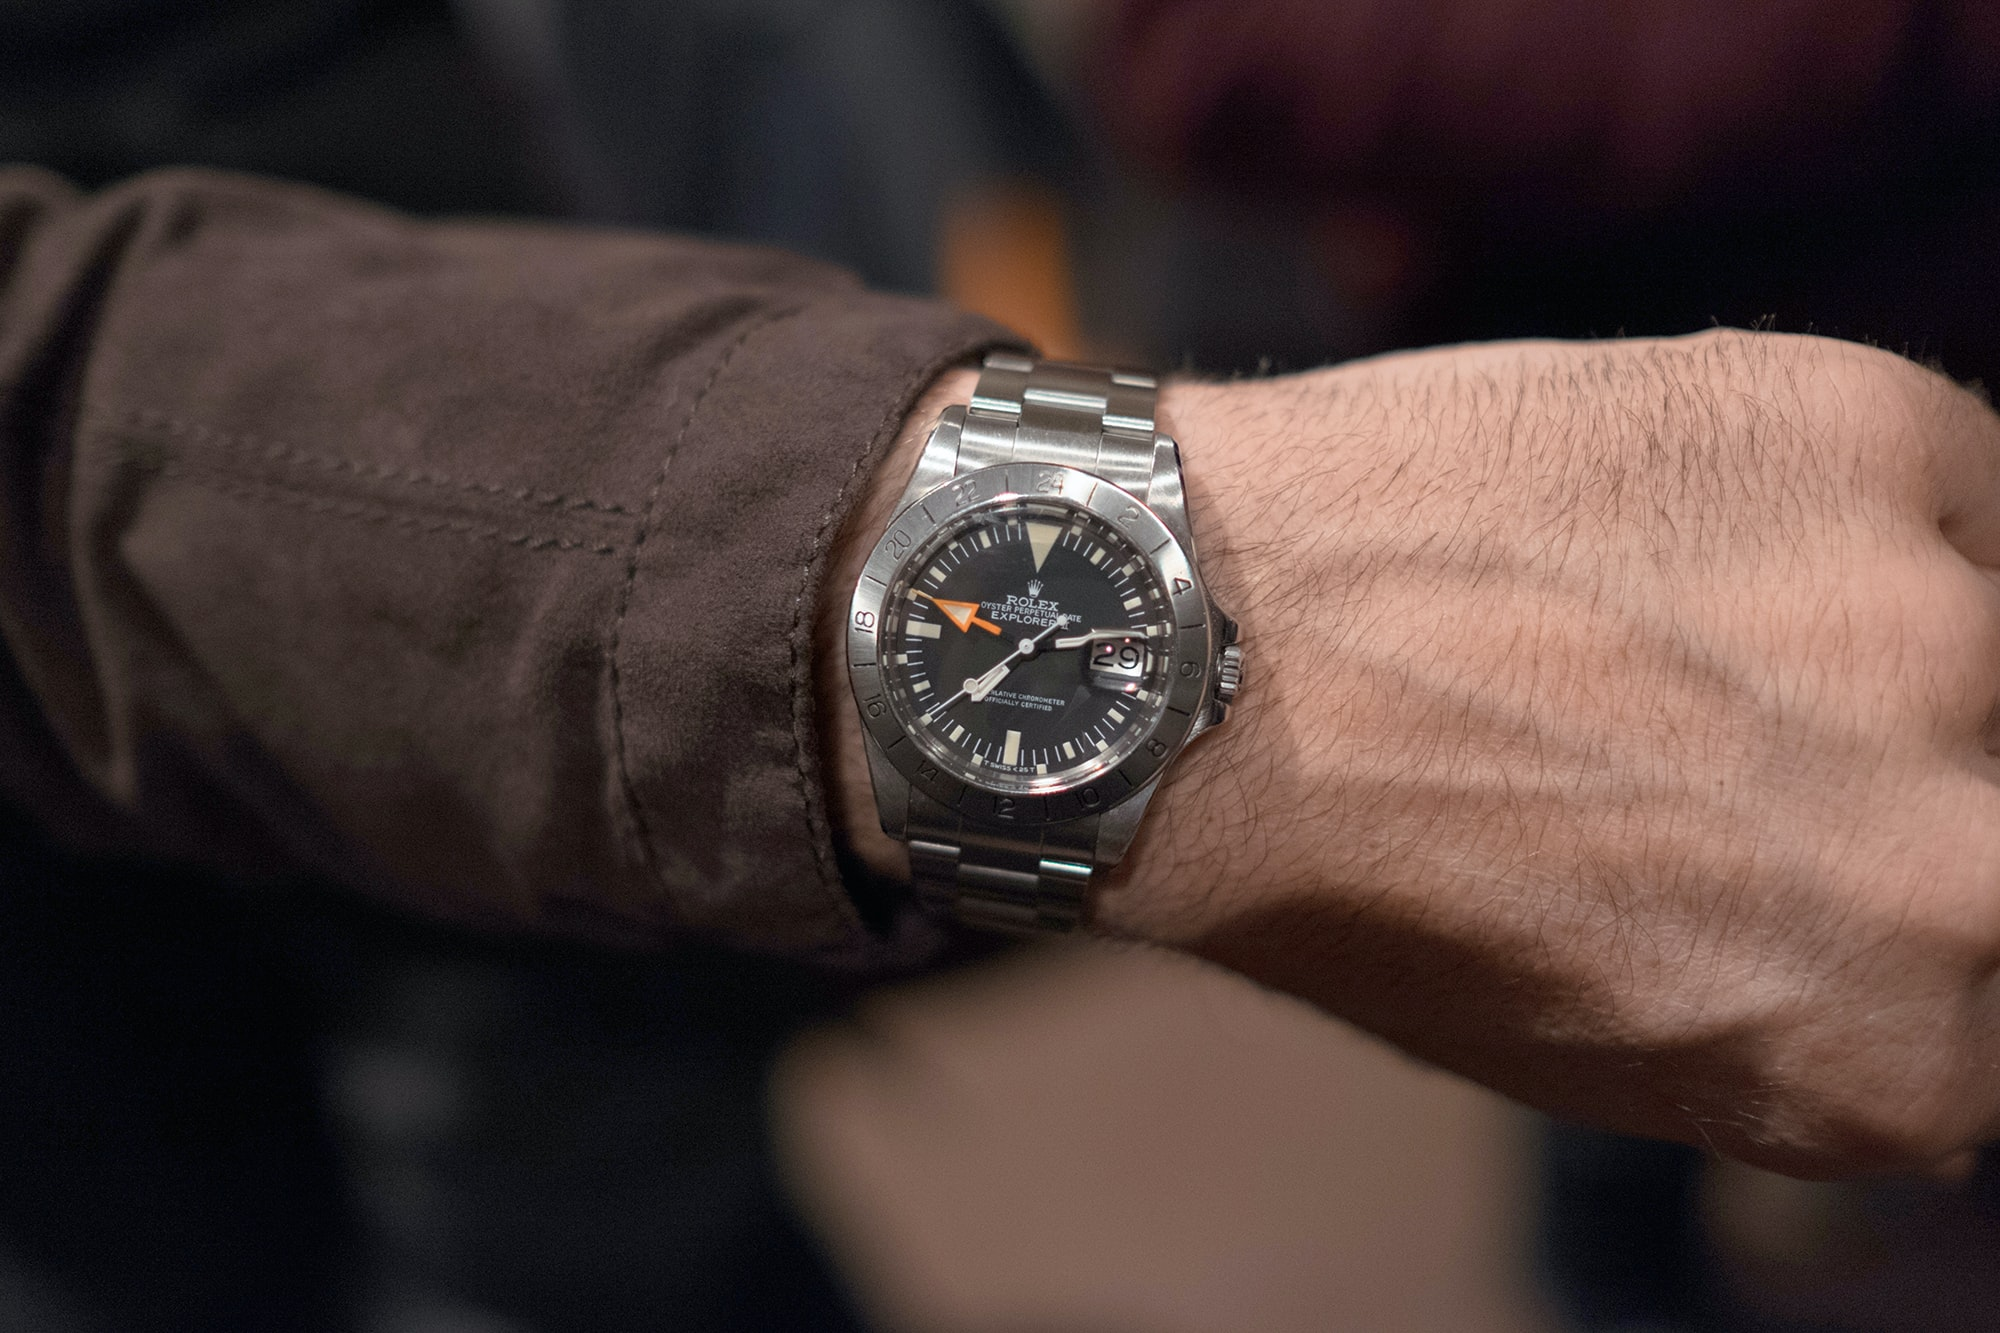 Photo Report: Watch Spotting At The HODINKEE Meet-Up In London (Plus Our Holiday 2016 Pop-Up At Harrods) Photo Report: Watch Spotting At The HODINKEE Meet-Up In London (Plus Our Holiday 2016 Pop-Up At Harrods) Hodinkee event 29 nov 2016 40